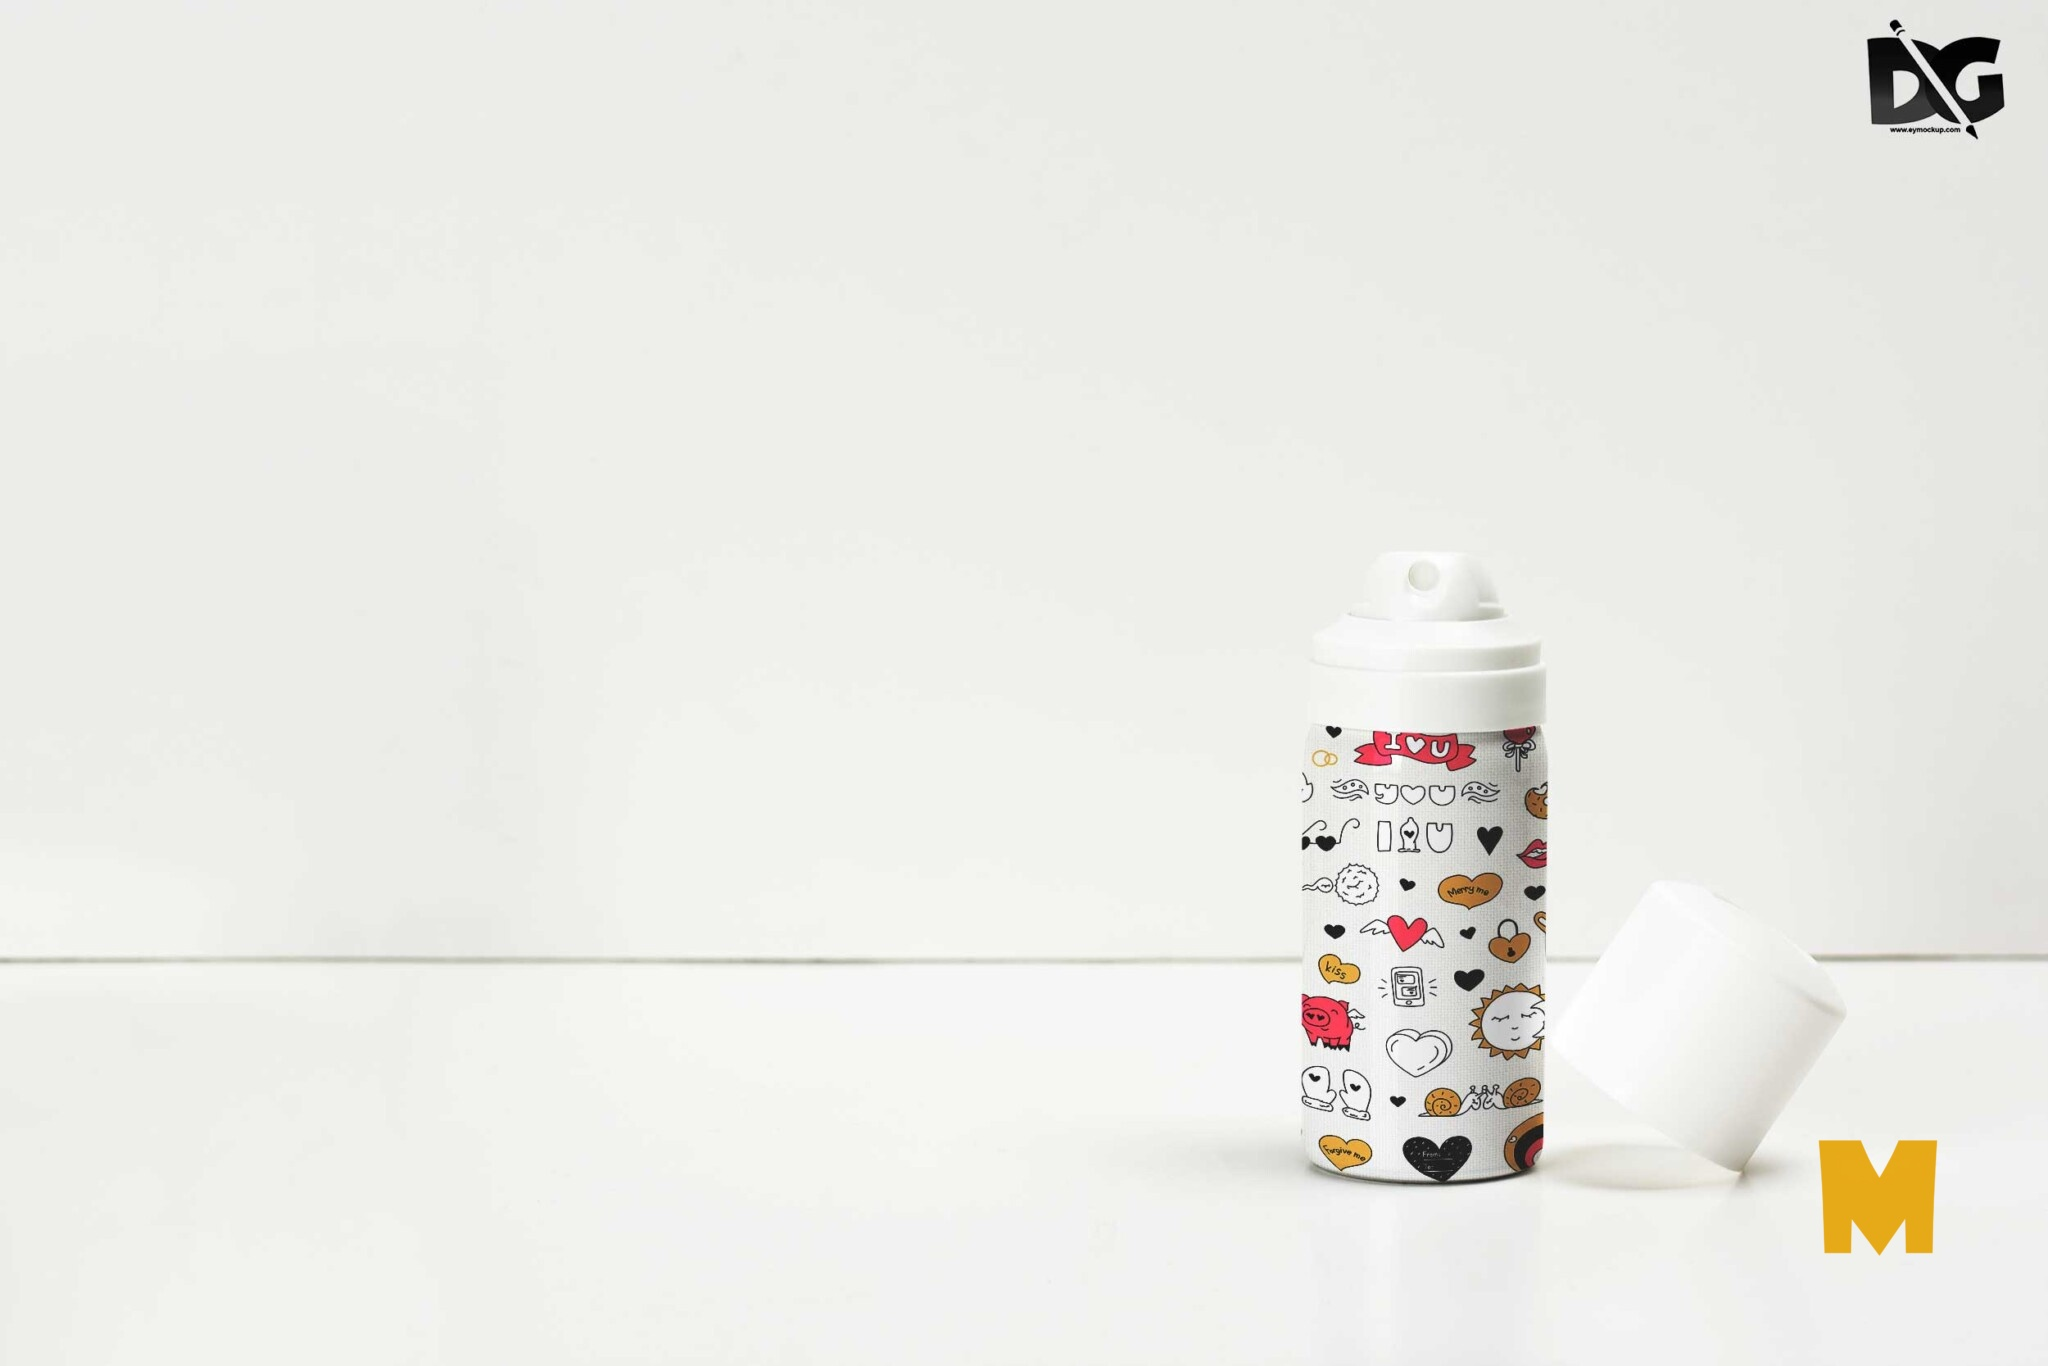 Spray PSD Mockup